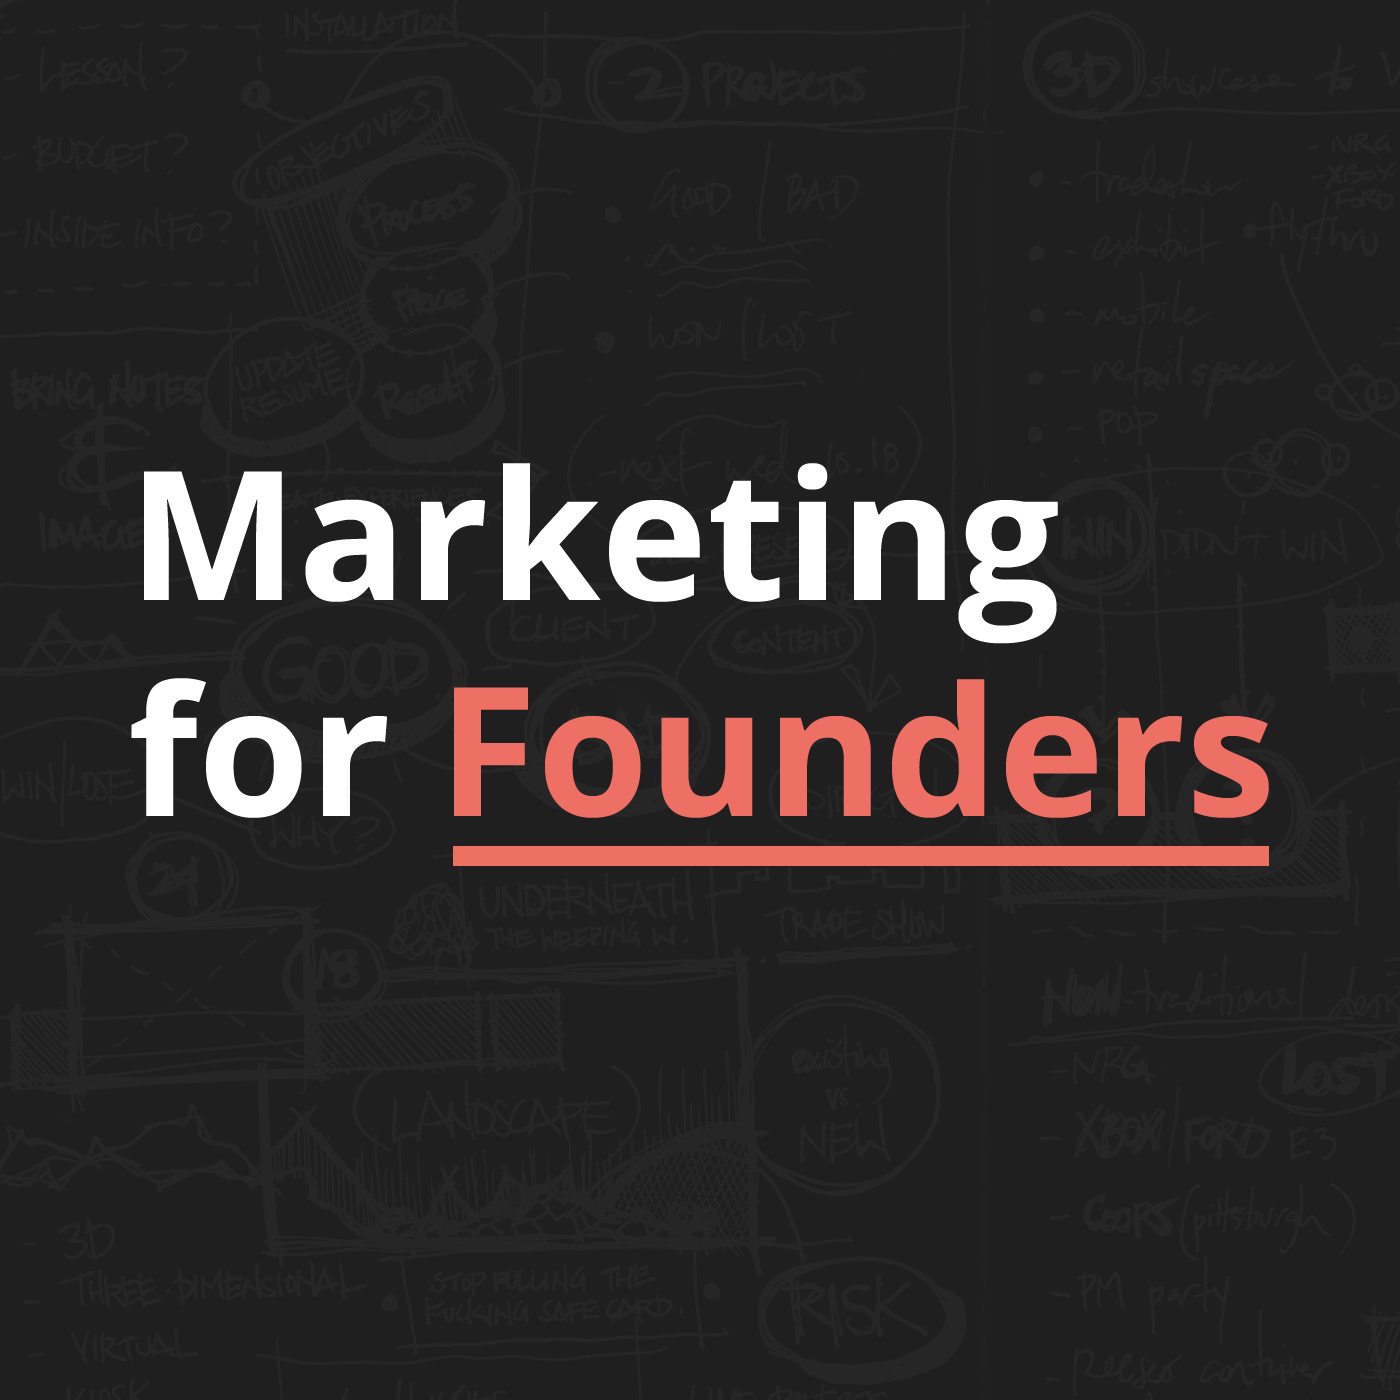 Marketing For Founders | Growth Hacking | Startups | Direct Response Marketing